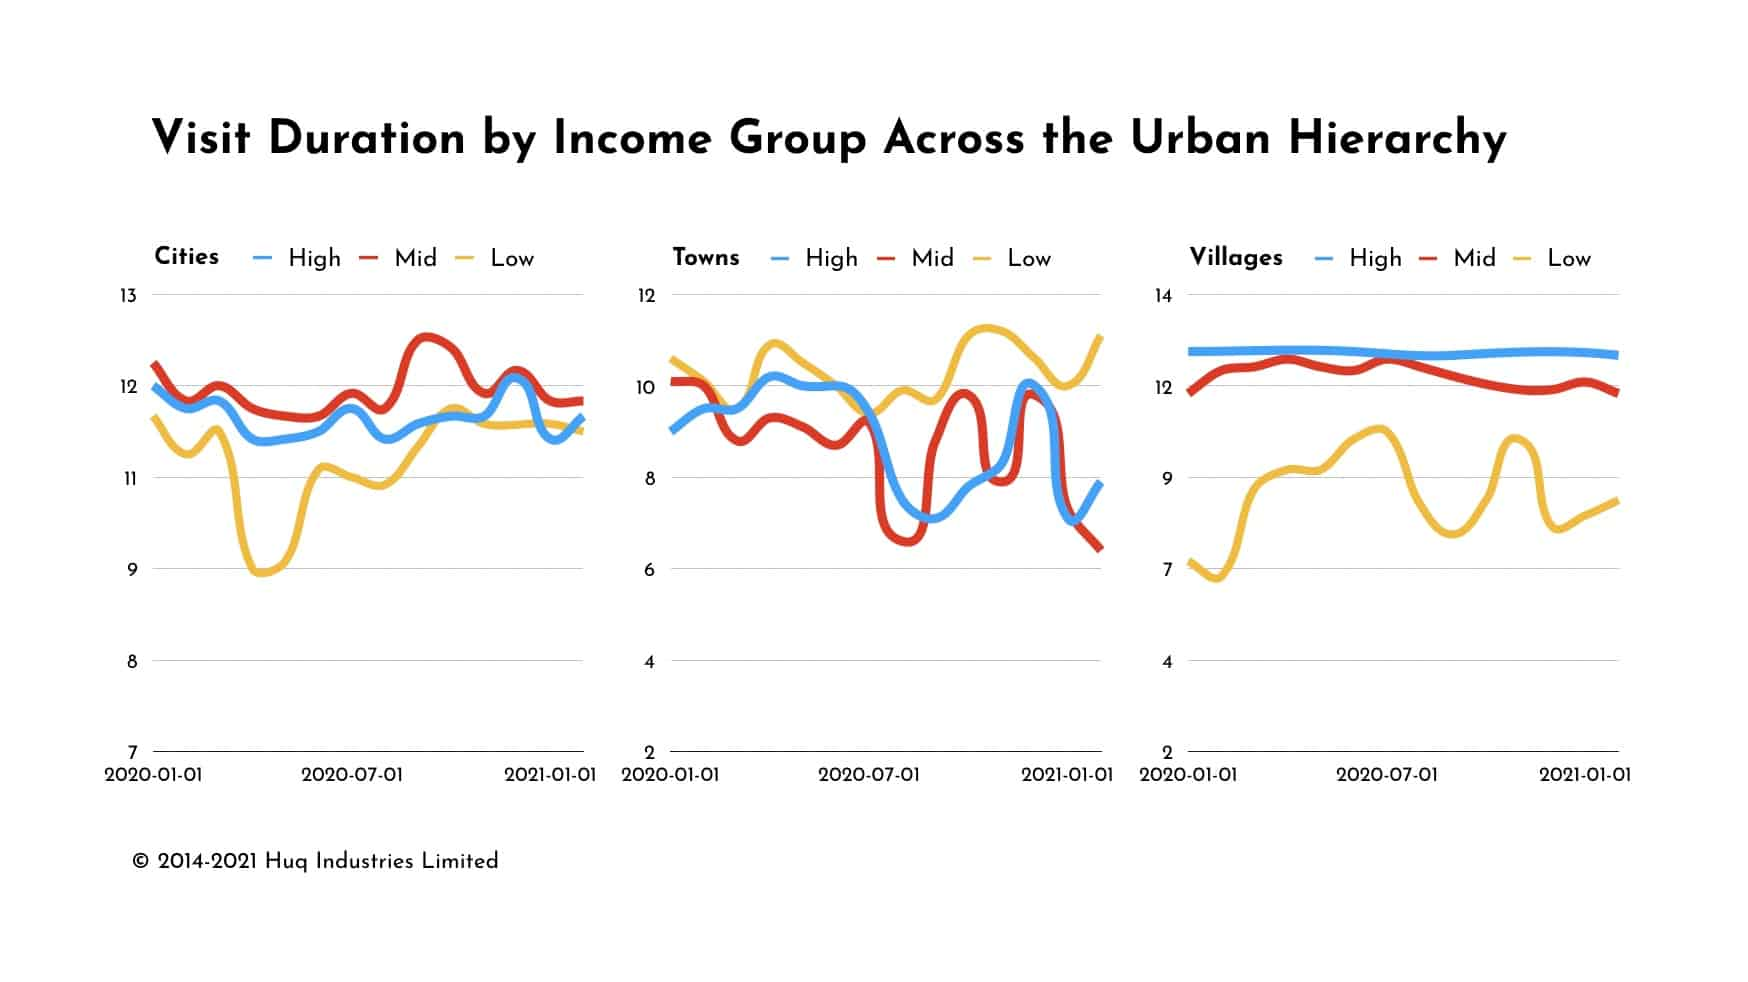 Dwell-time by city, town and village by income